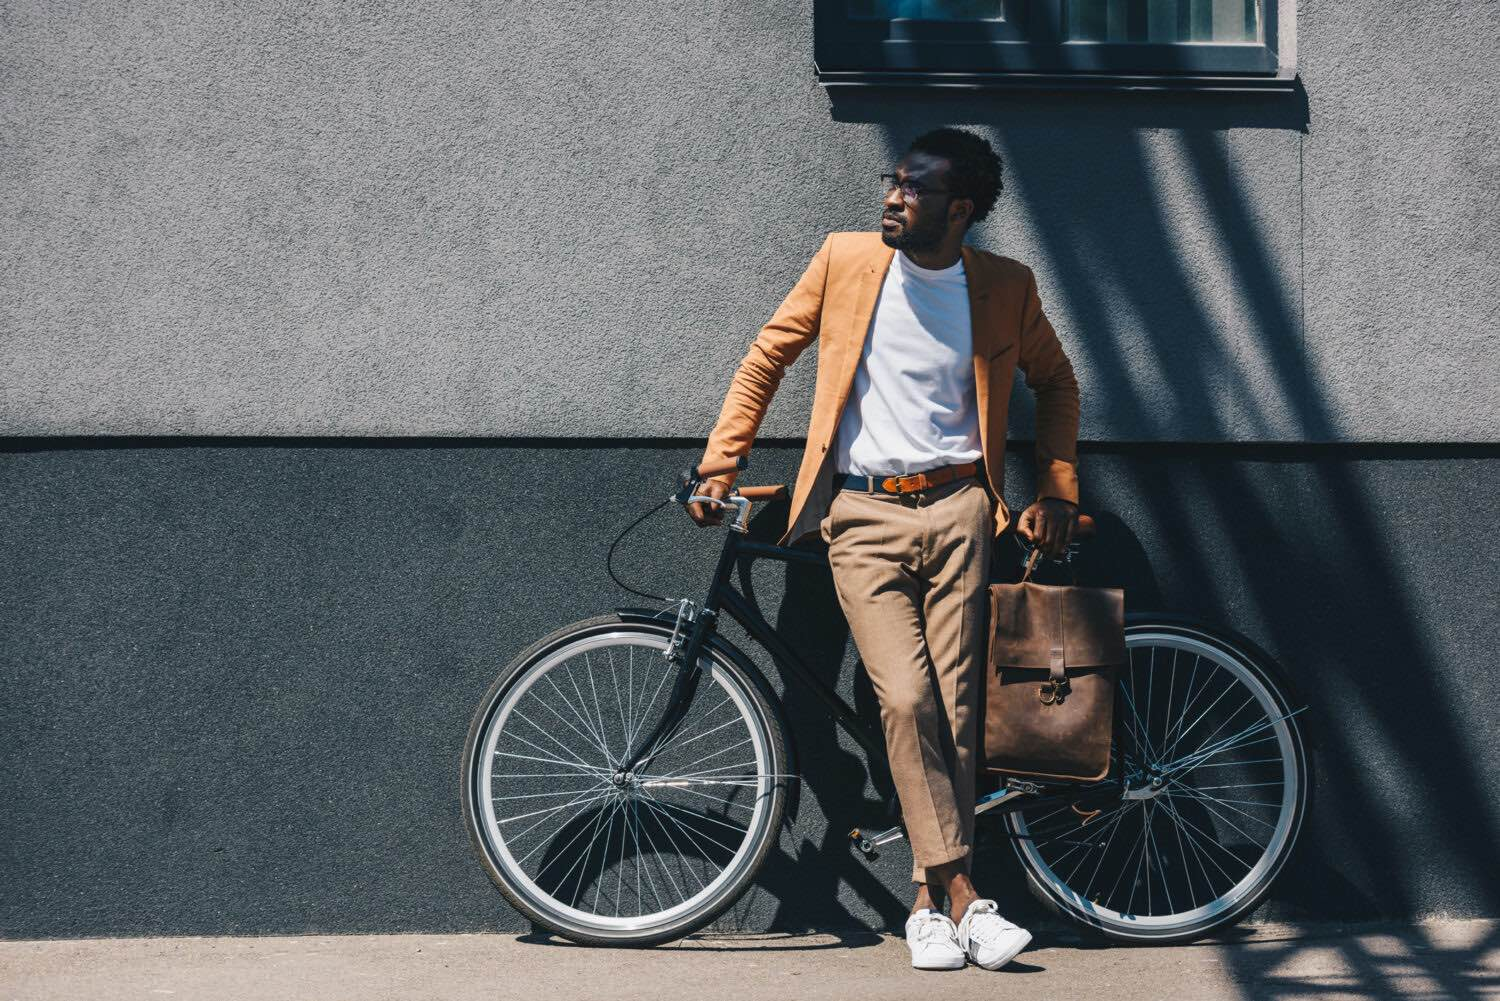 Man standing by wall near bicycle and looking away holding a bag